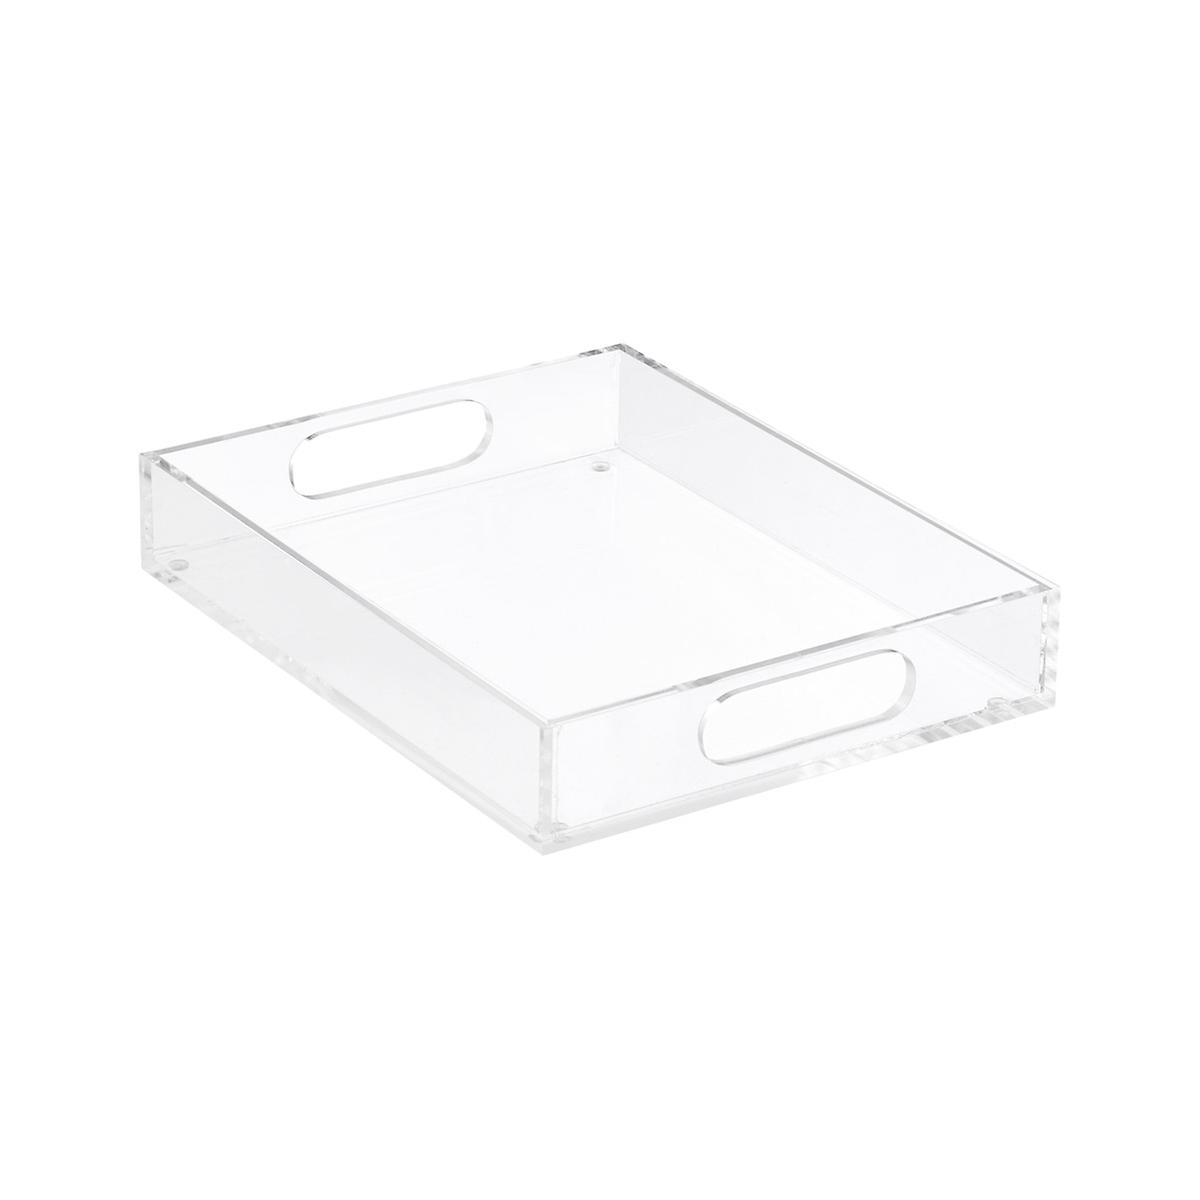 Small Premium Acrylic Paper Tray | The Container Store